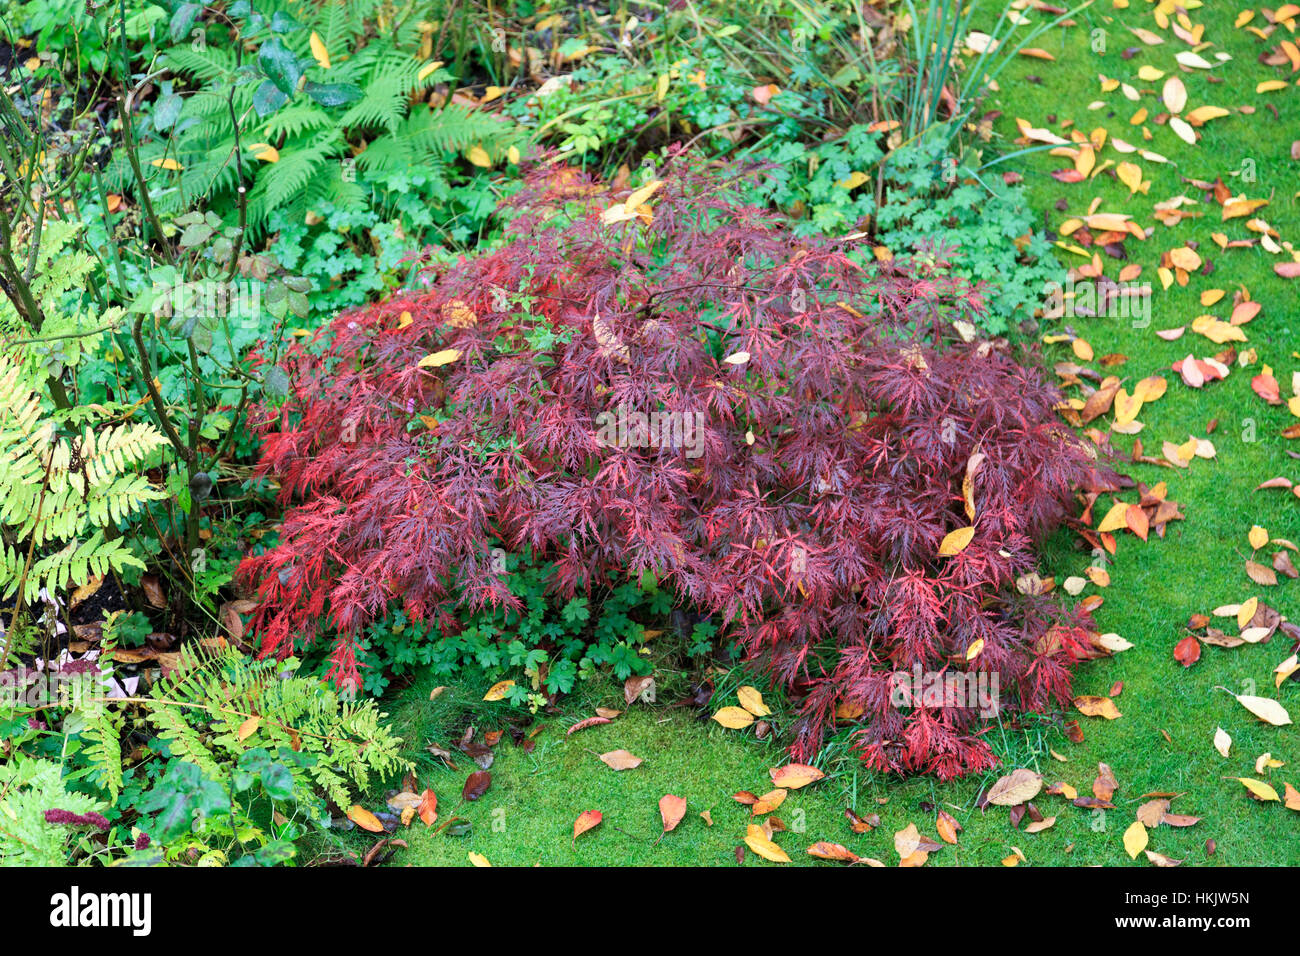 acer palmatum dissectum garnet japanese maple in autumn stock photo 132565937 alamy. Black Bedroom Furniture Sets. Home Design Ideas